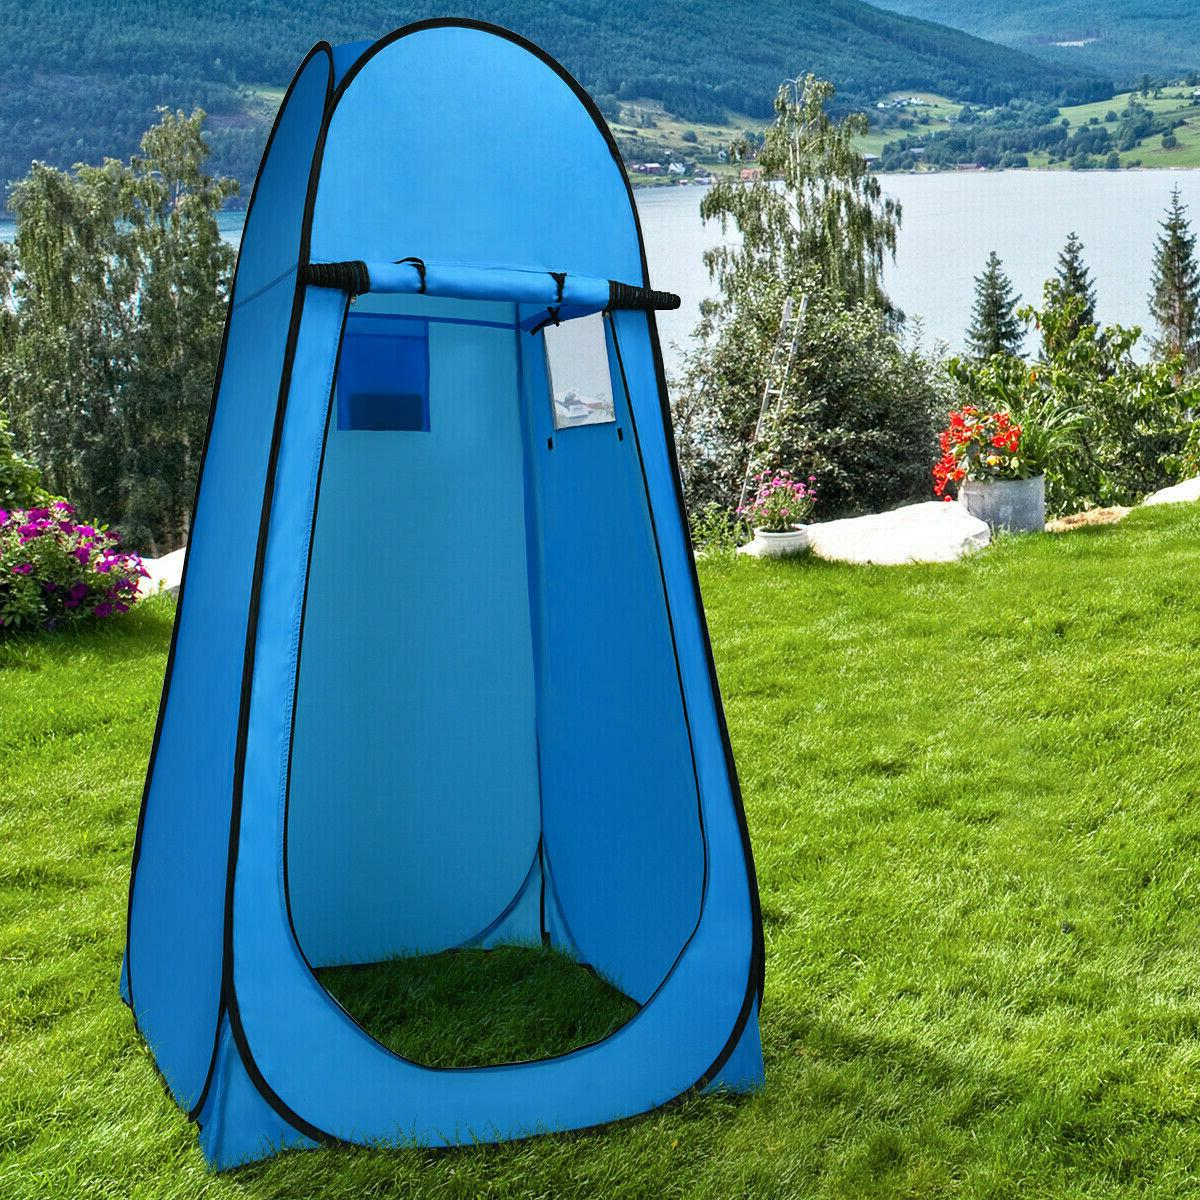 Pop Tent Portable Camping Shower